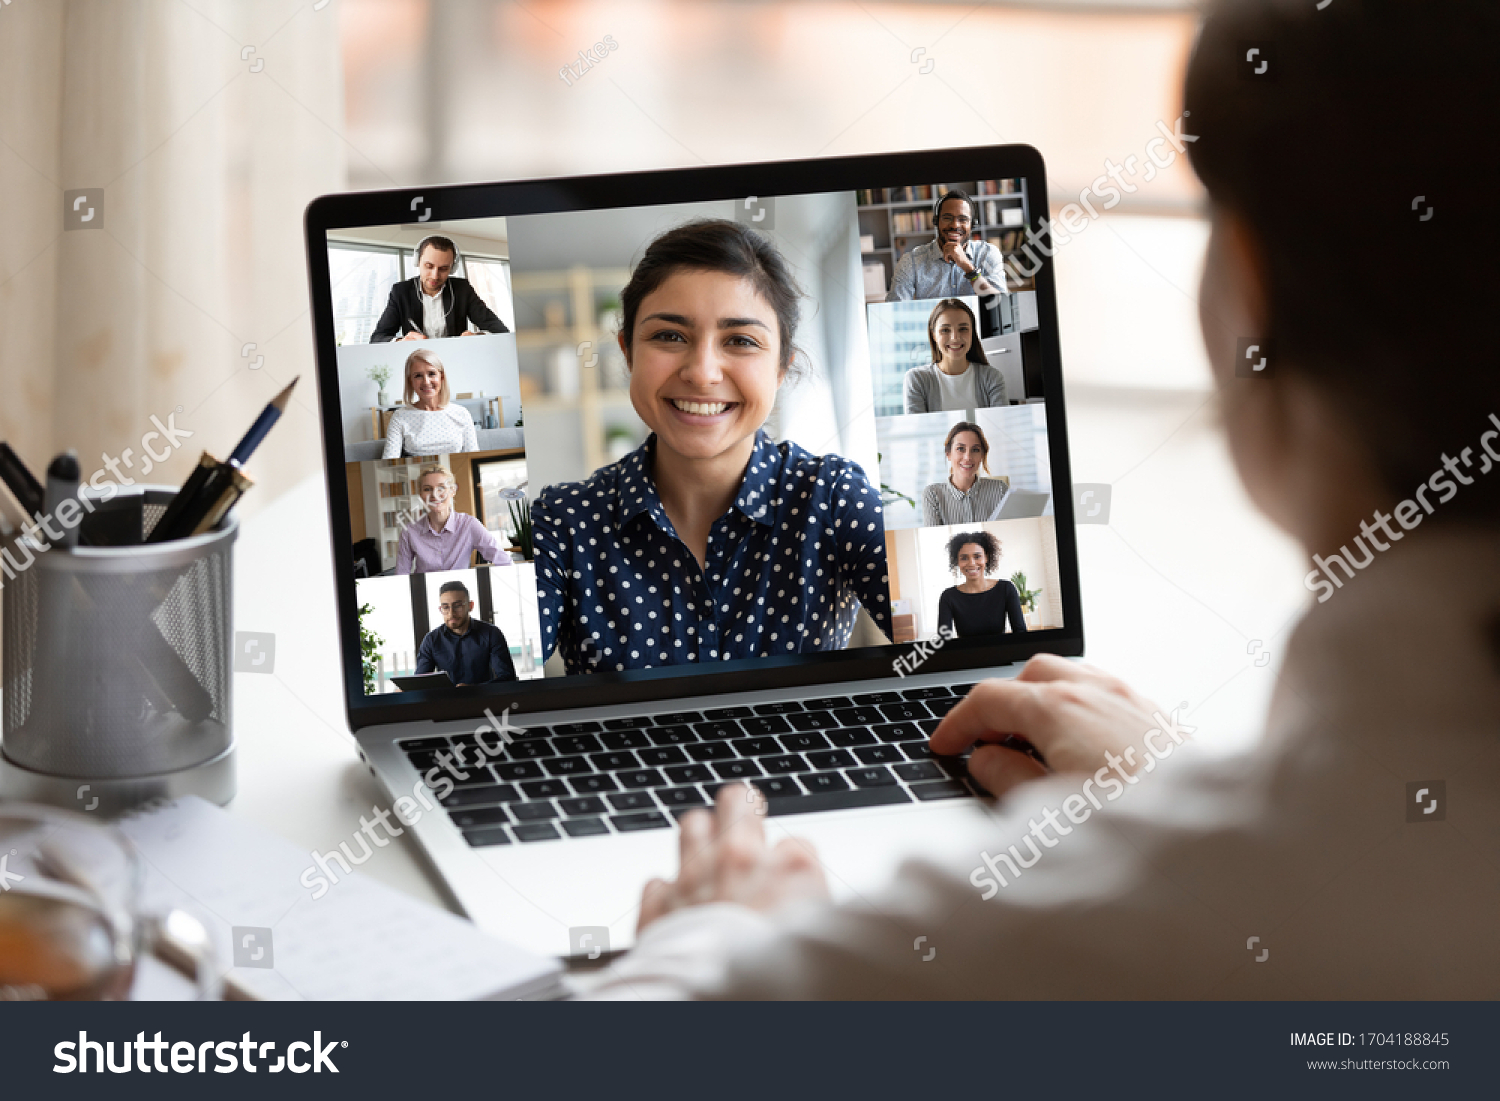 Woman sit at desk looking at computer screen where collage of diverse people webcam view. Indian ethnicity young woman lead video call distant chat, group of different mates using videoconference app #1704188845